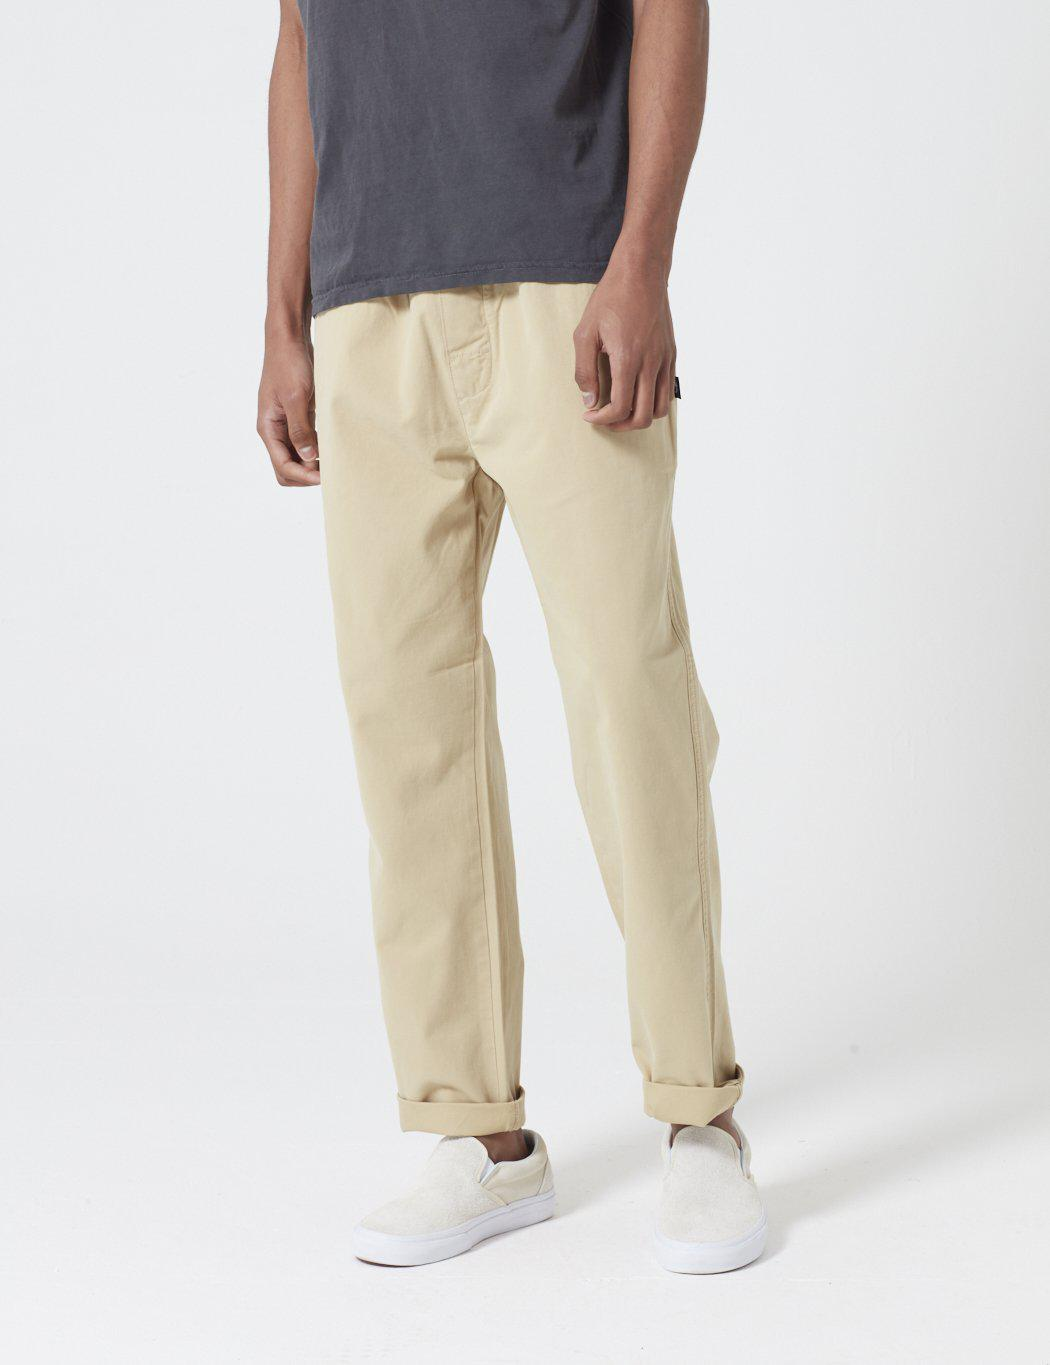 098ecf14895 Stussy Brushed Beach Pant in Natural for Men - Lyst